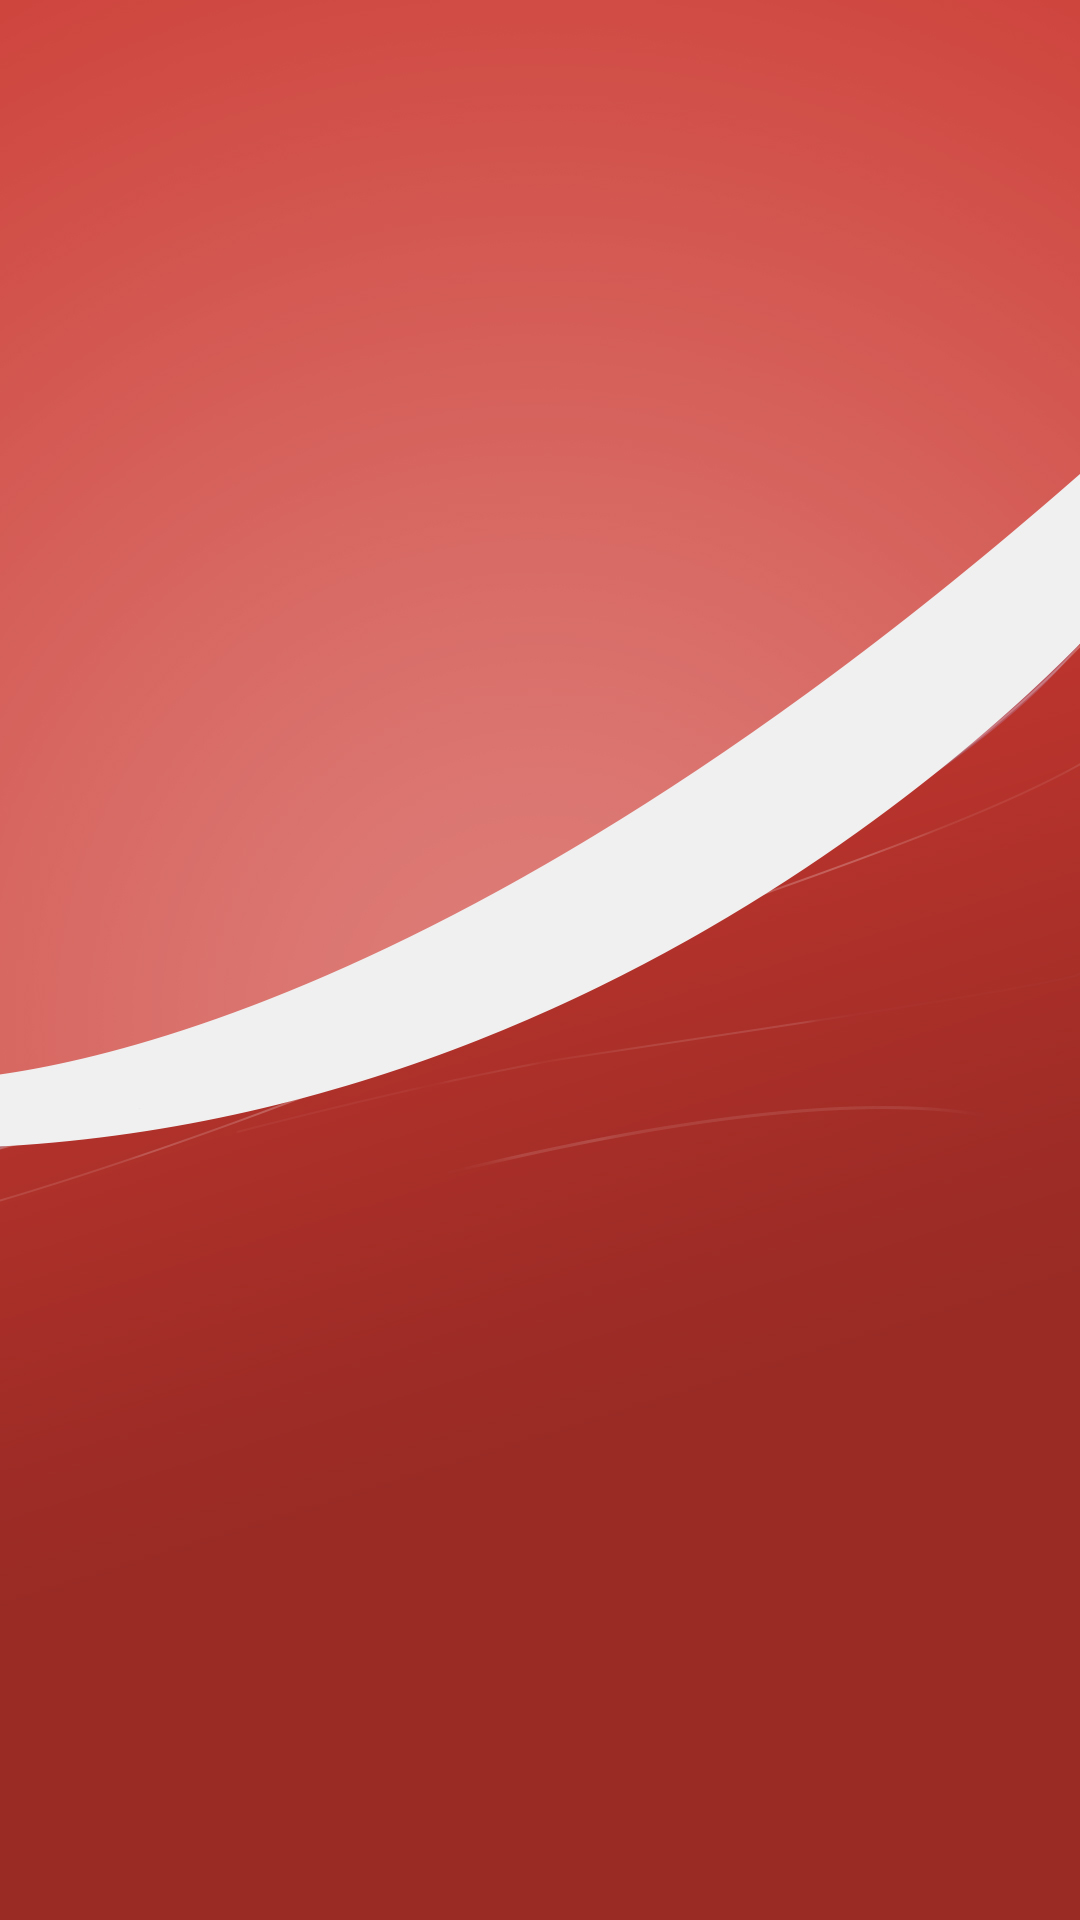 Xperia Z4v Red wallpaper